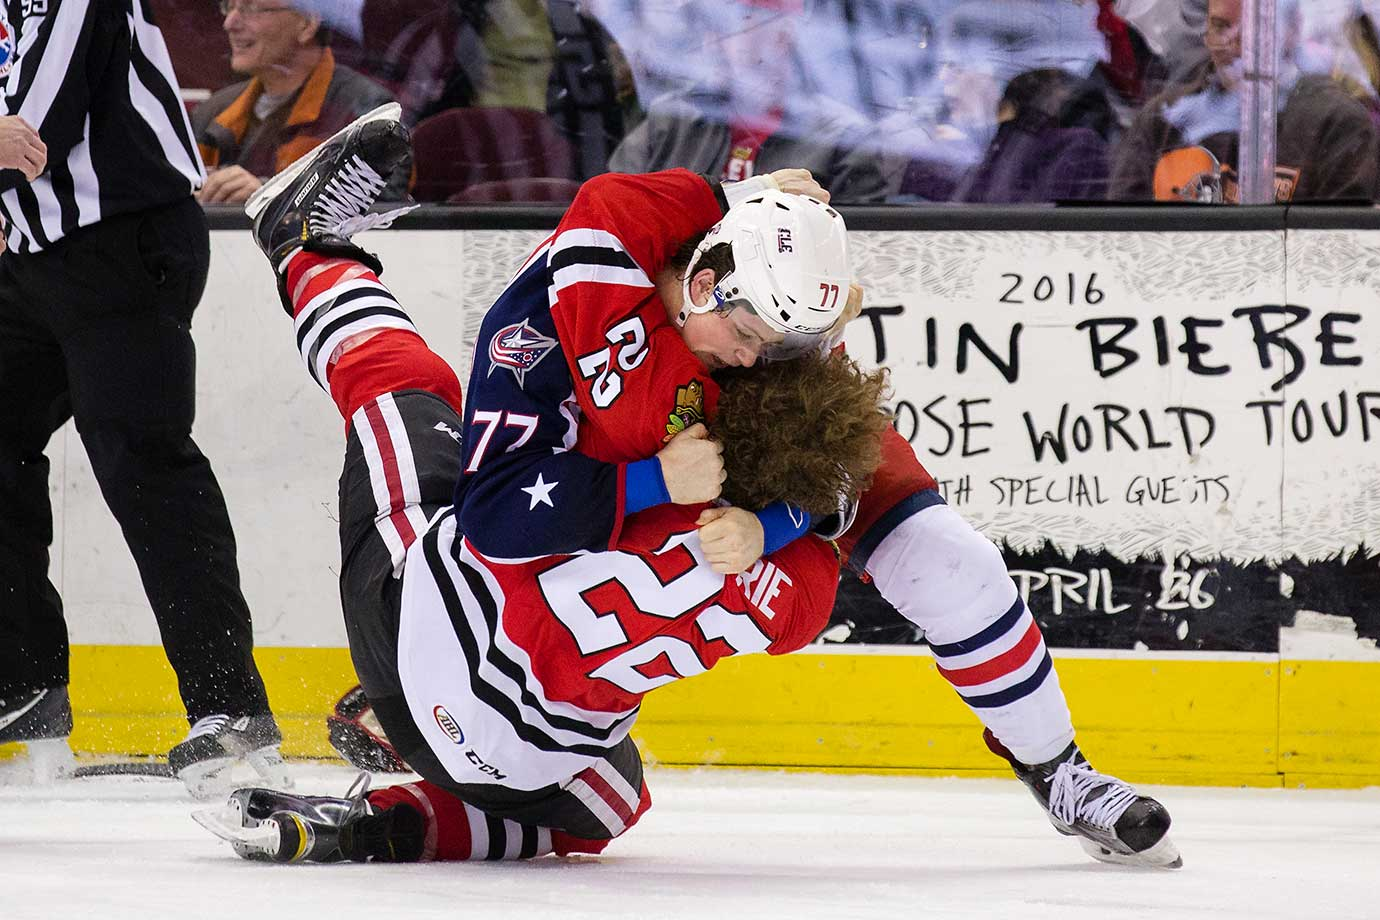 Josh Anderson (77) of Lake Eerie and Pierre-Cedric Labrie of Rockford fight during an AHL game in Cleveland.